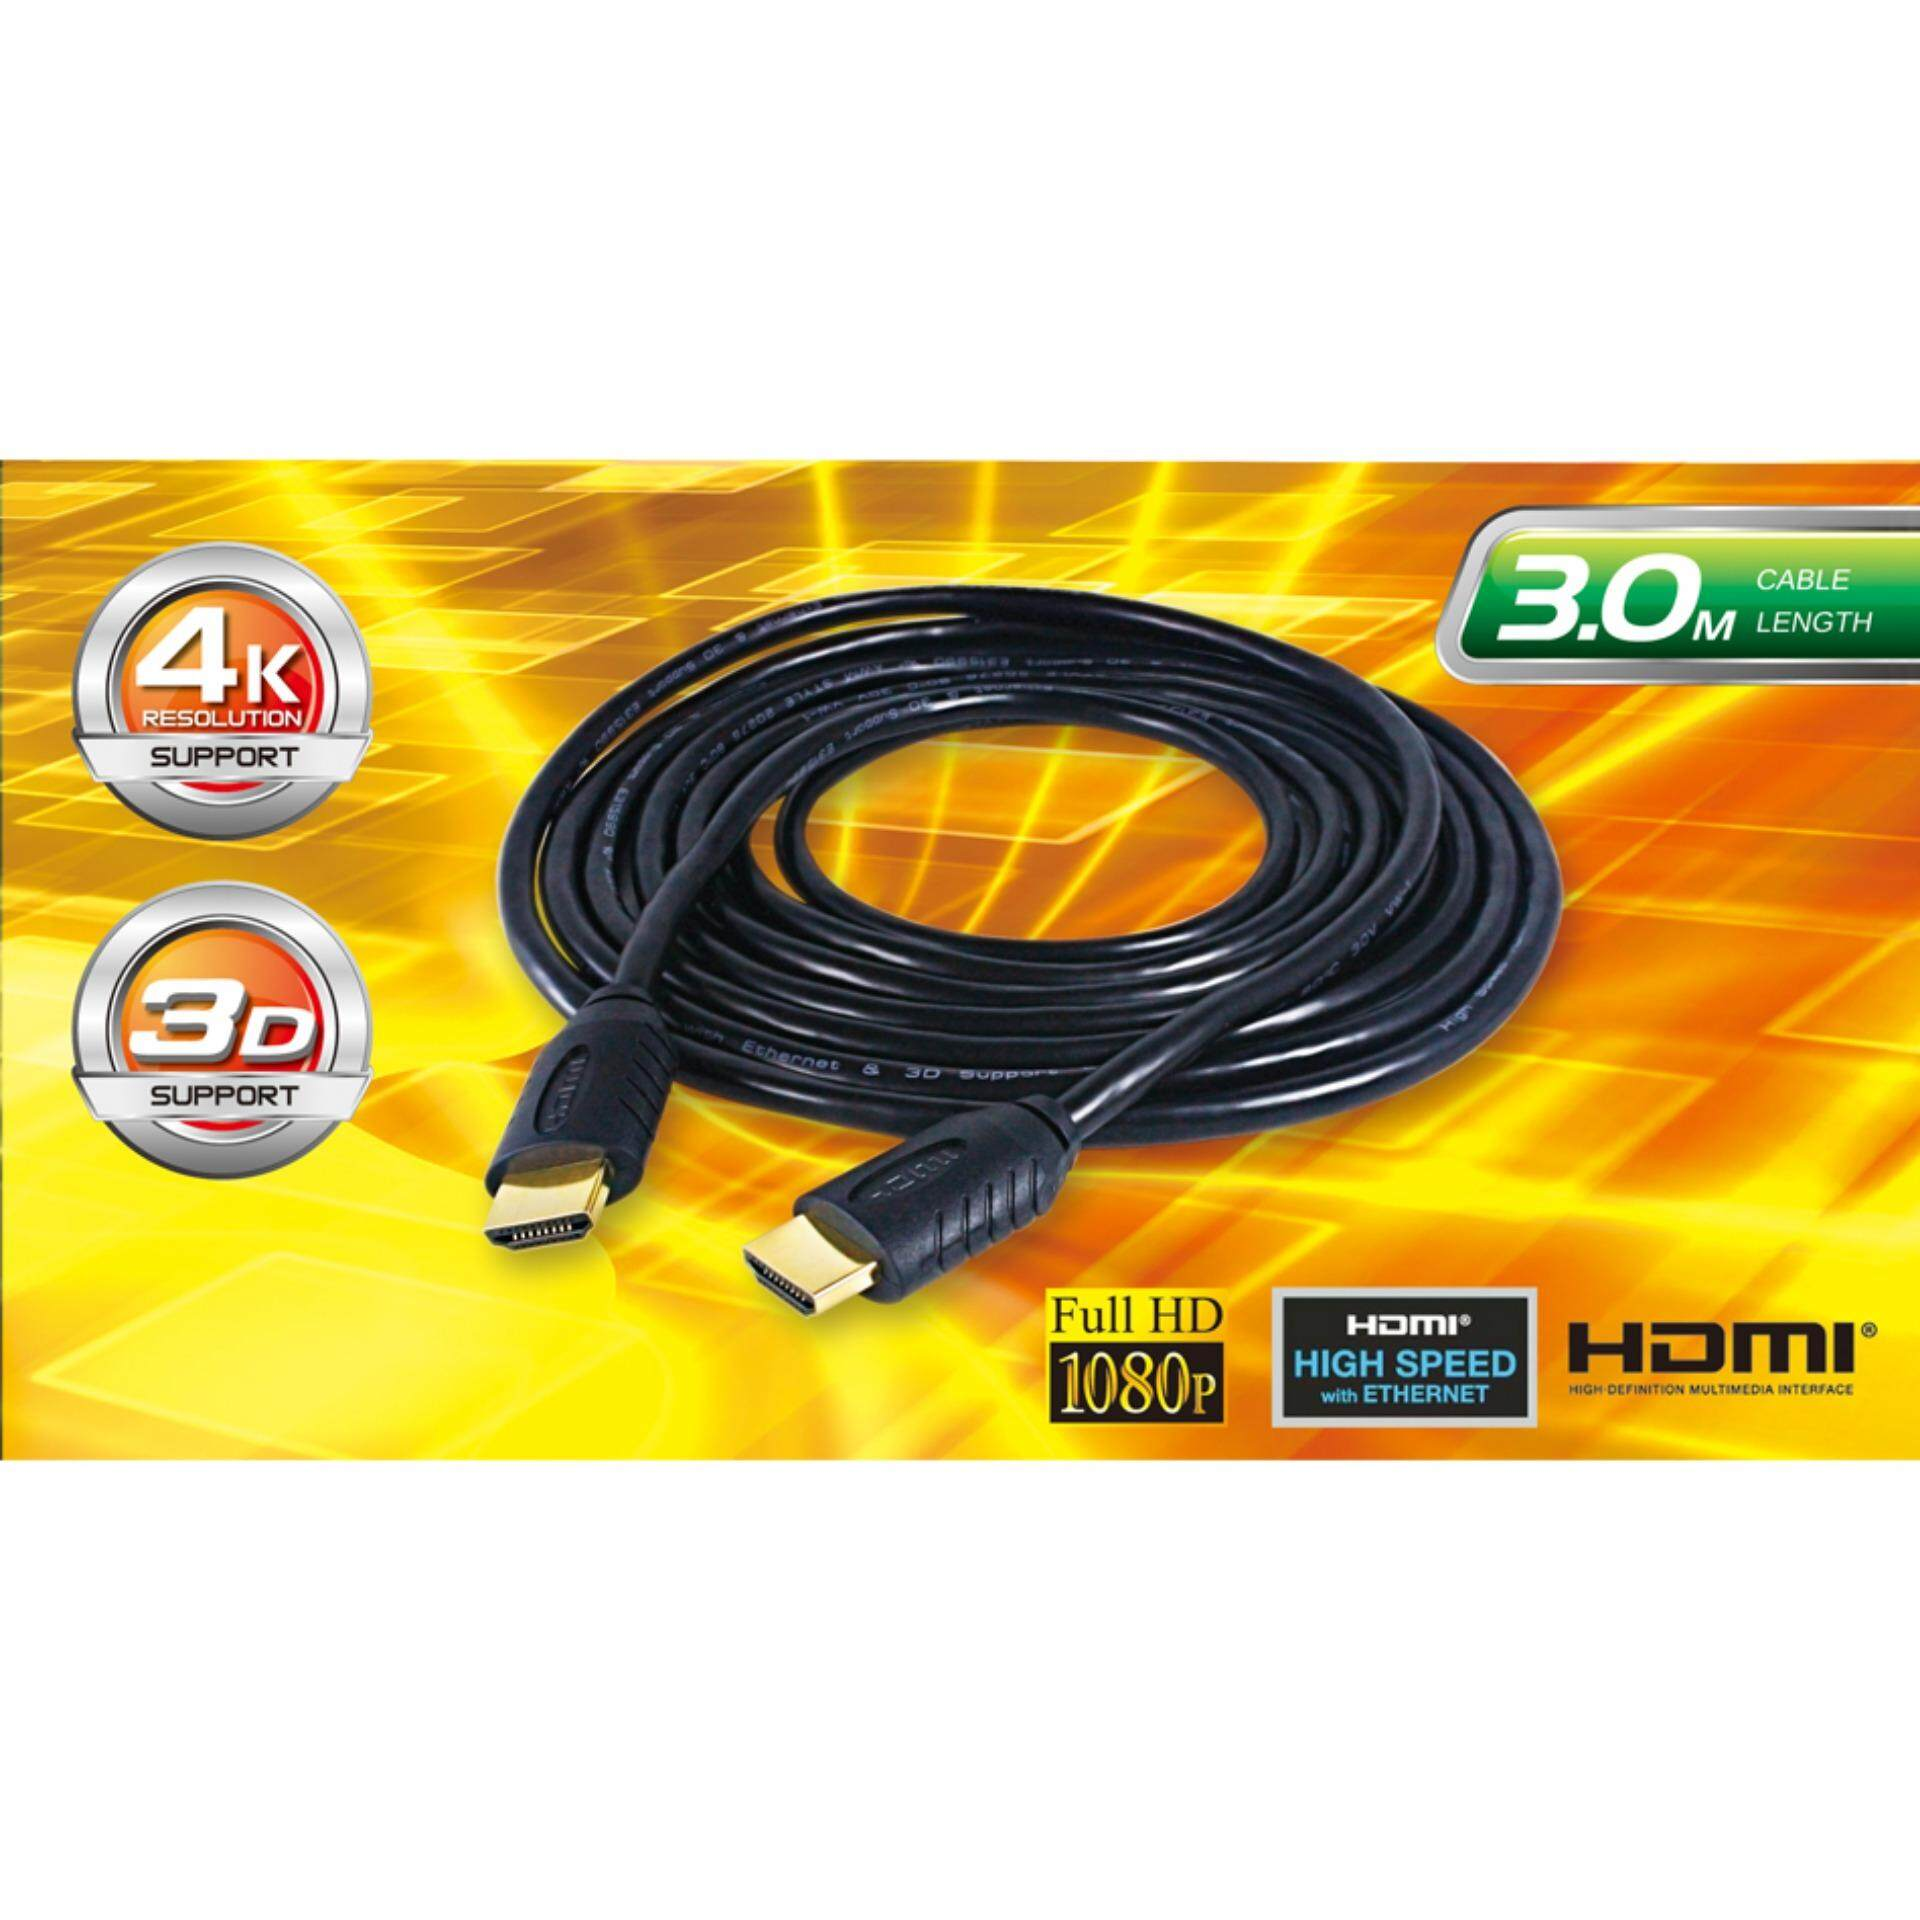 CLiPtec High Speed HDMI Cable with Ethernet 3.0 m